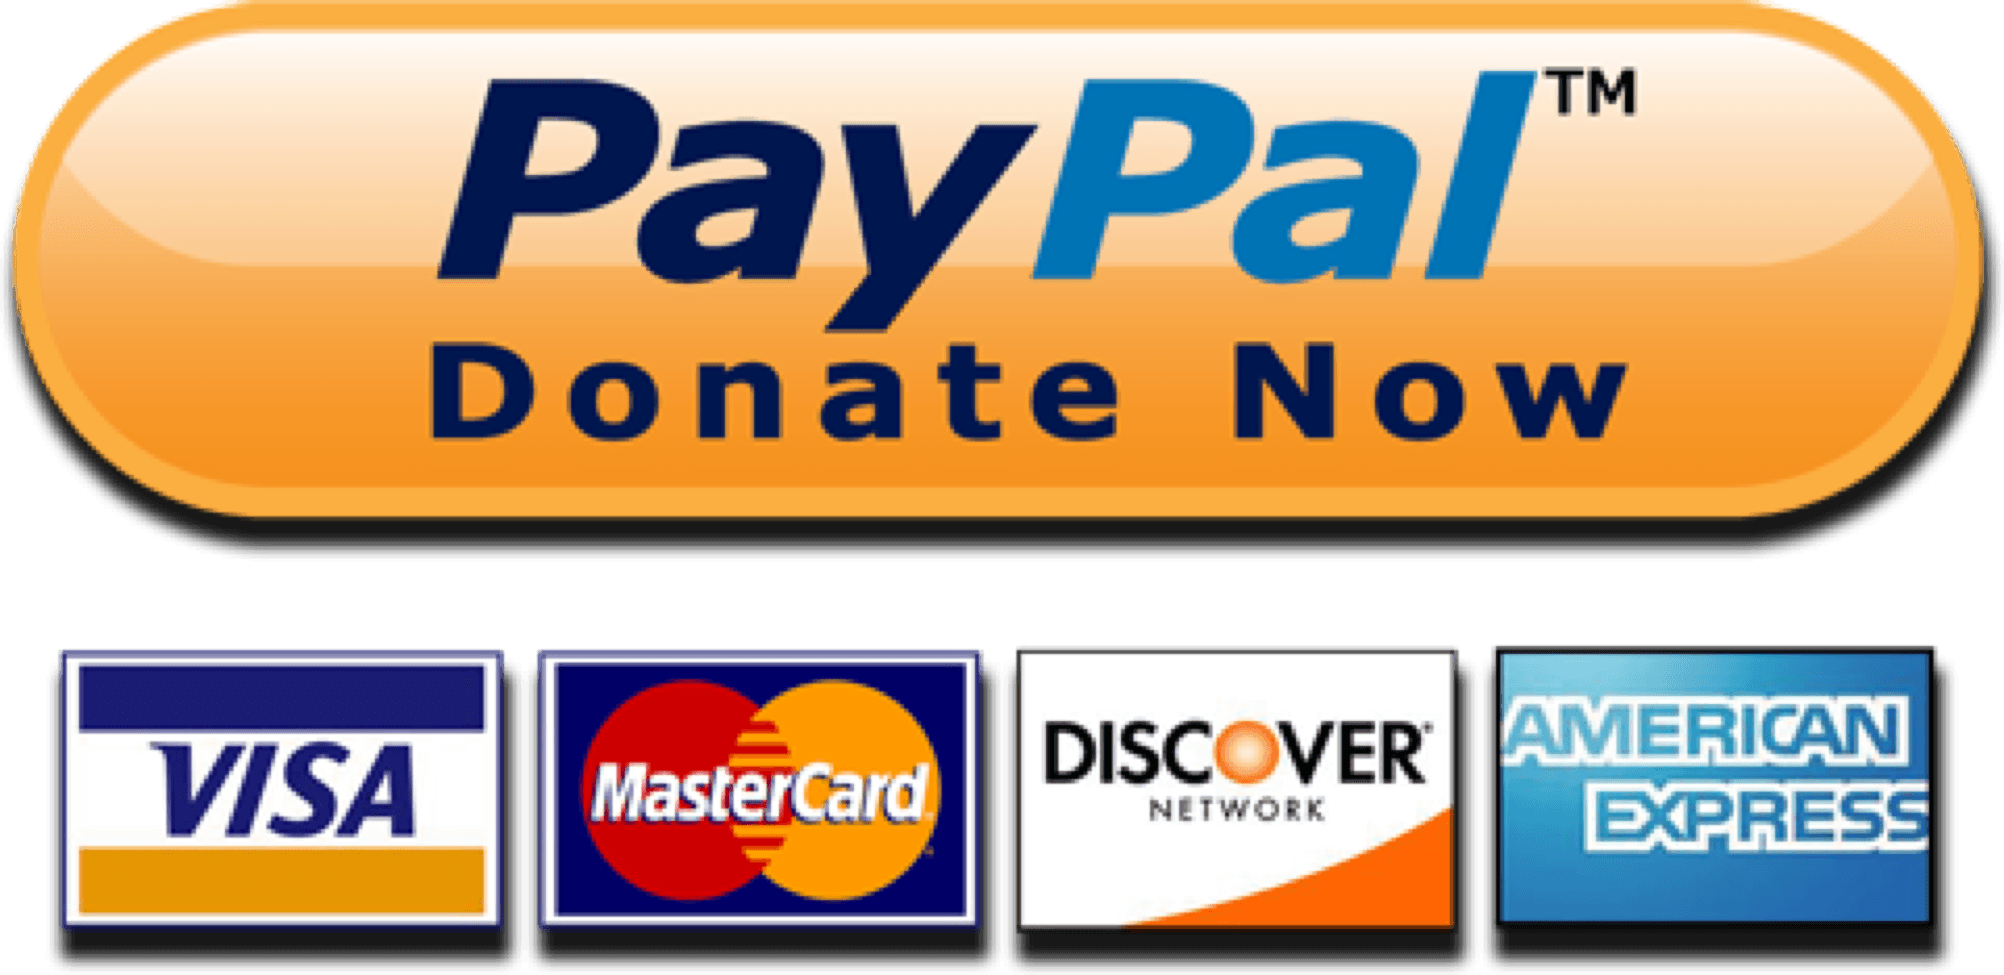 Make a donation via PayPal